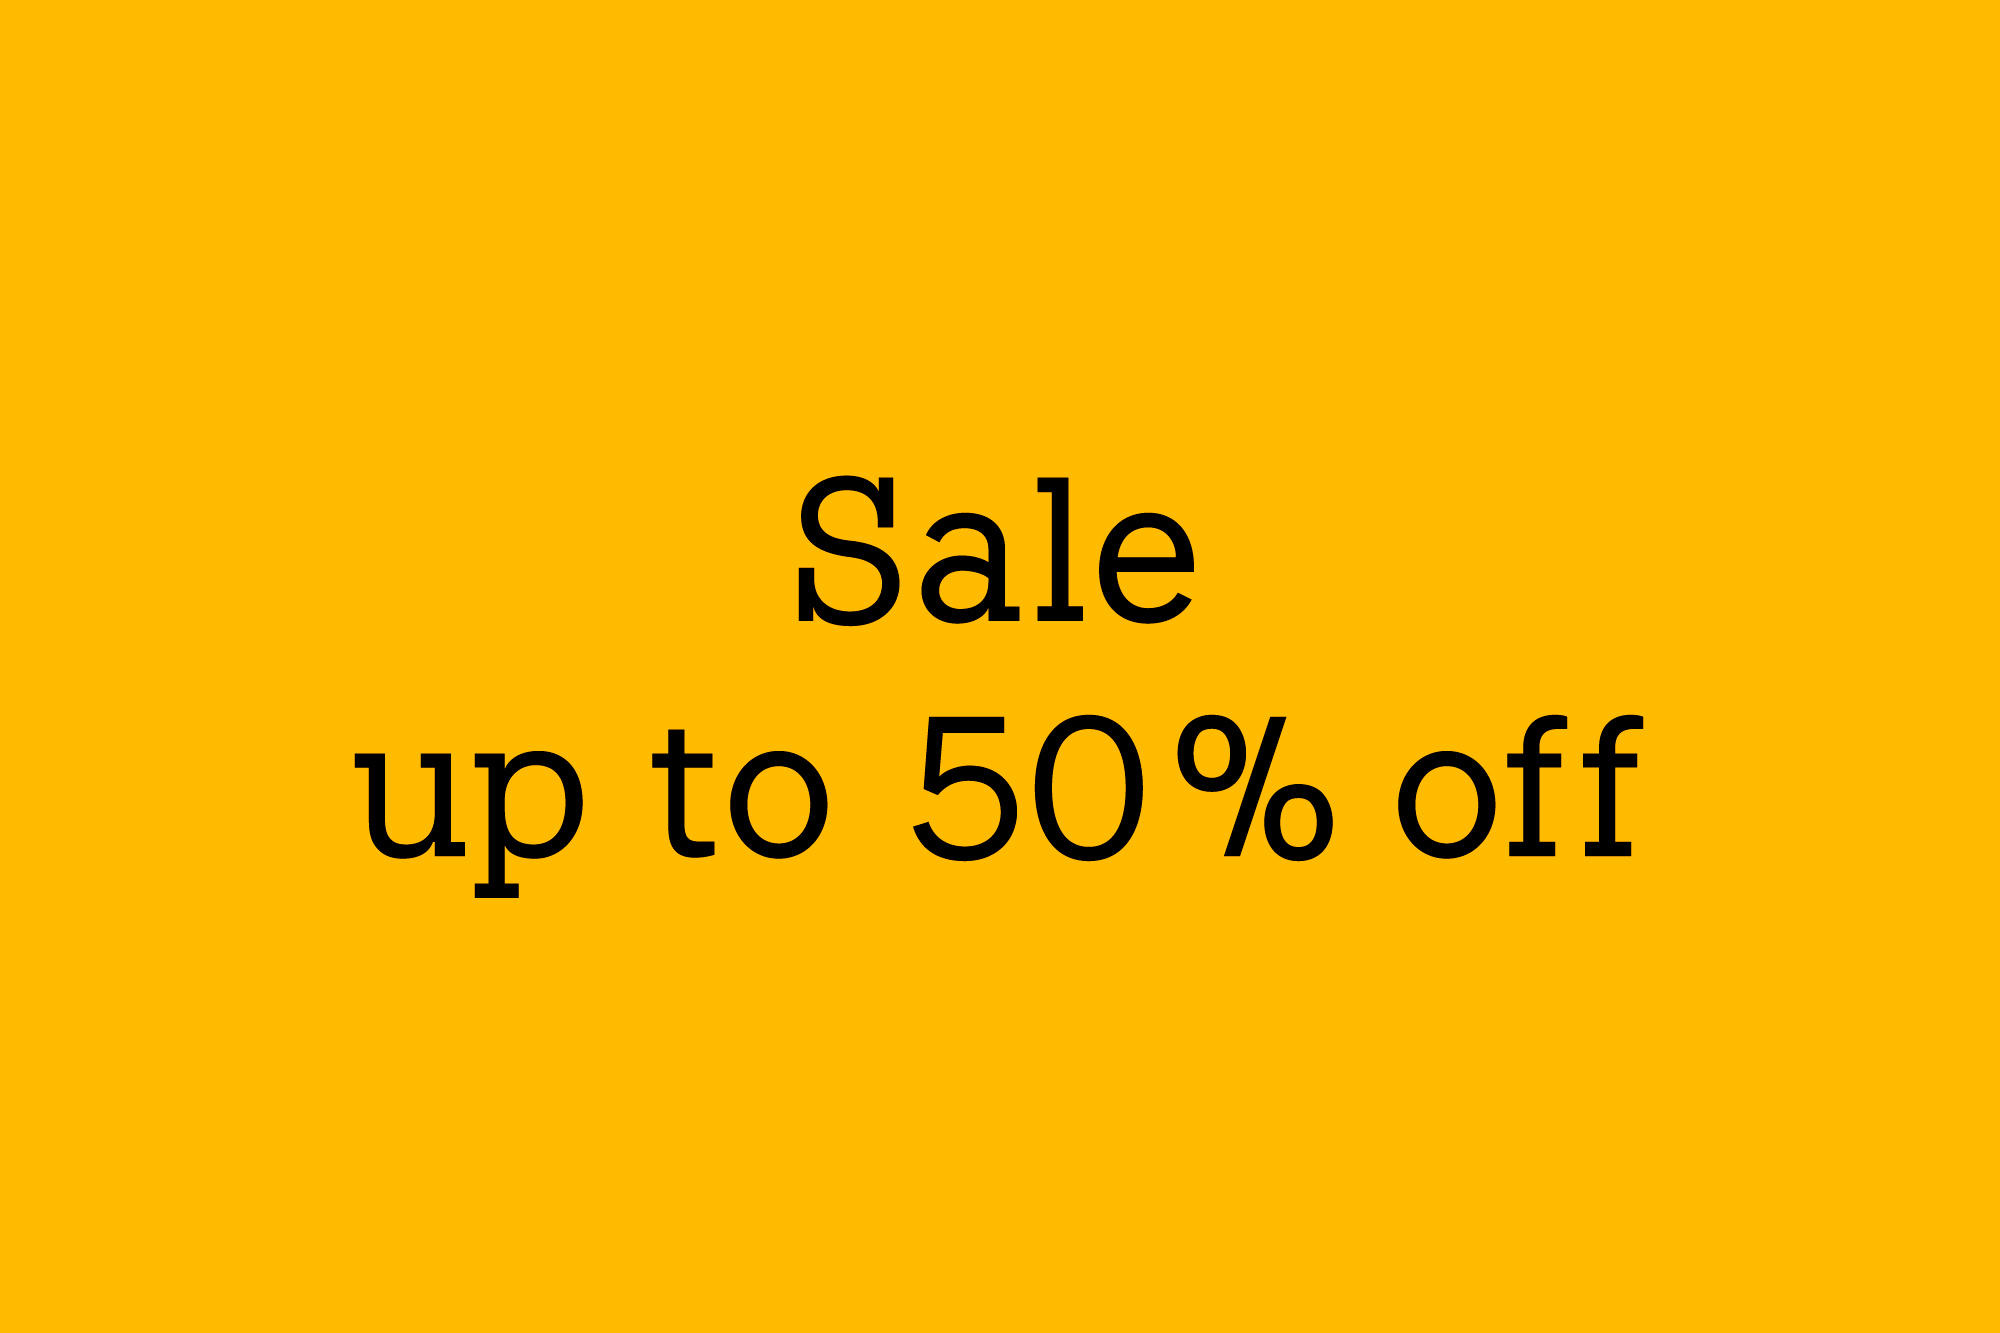 6.26- Sale up to 50% off